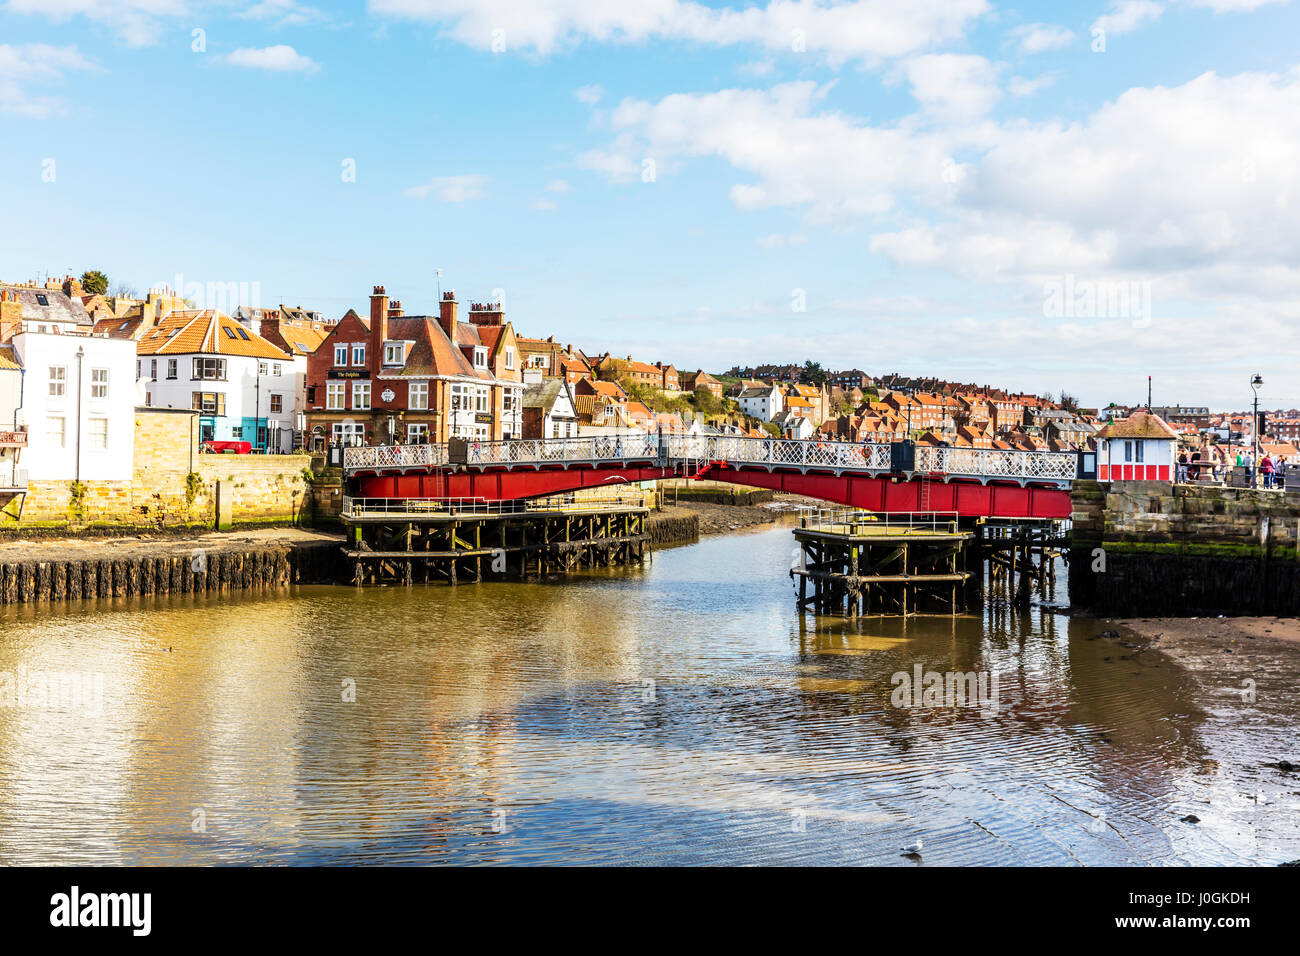 Whitby Swing Bridge is a pedestrian and road bridge over the River Esk in Whitby North Yorkshire UK England swing - Stock Image